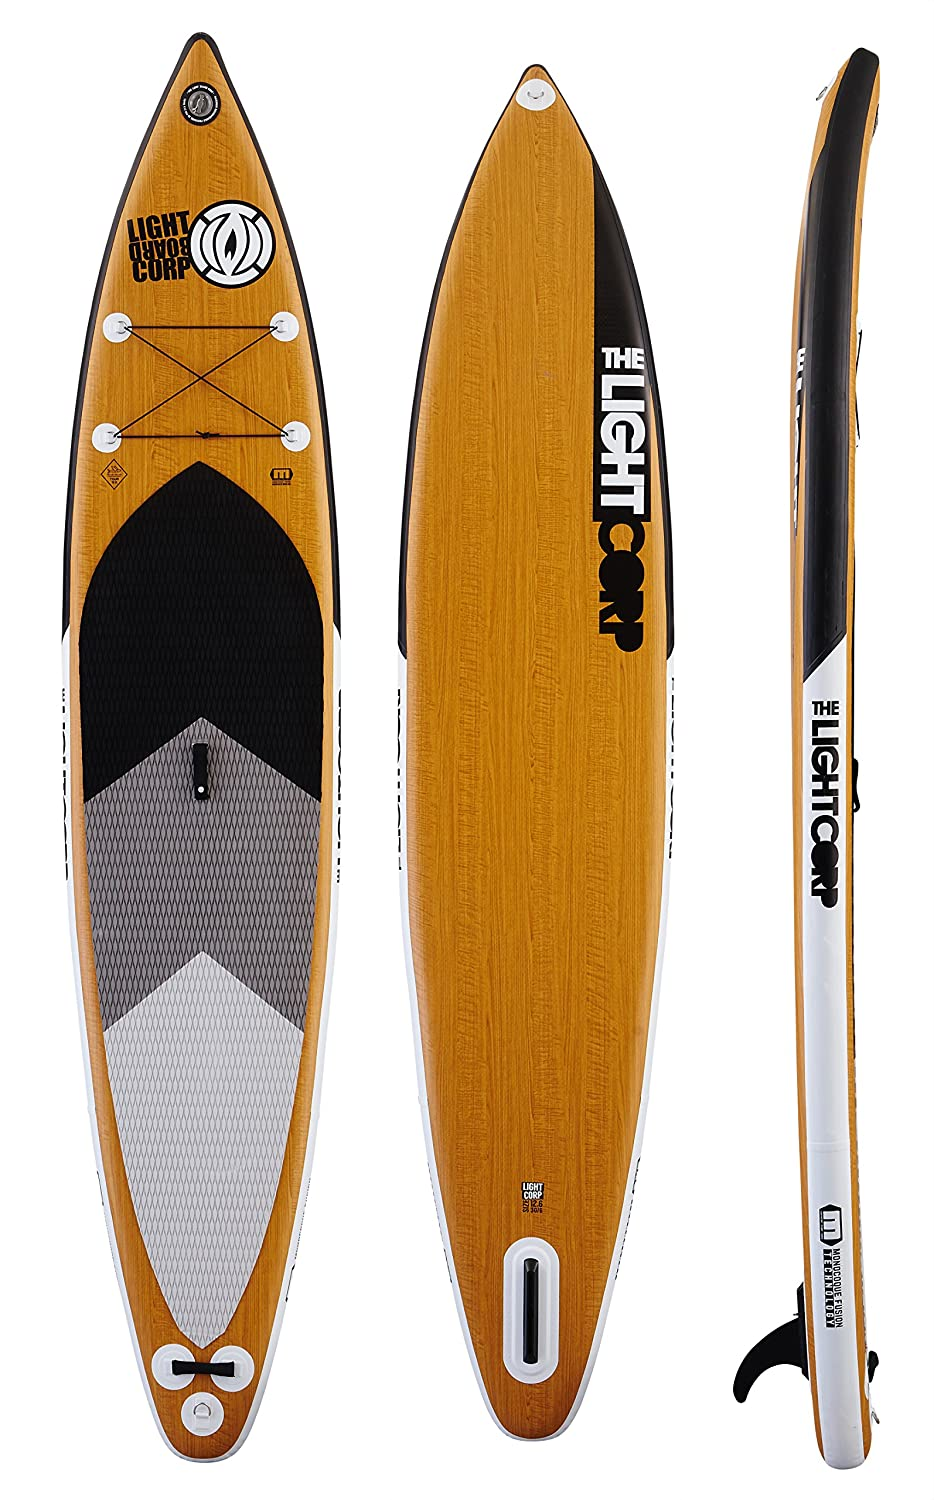 MFT Freeride Tourer 12 6 Inflatable Stand Up Paddle Tabla de Surf: Amazon.es: Deportes y aire libre